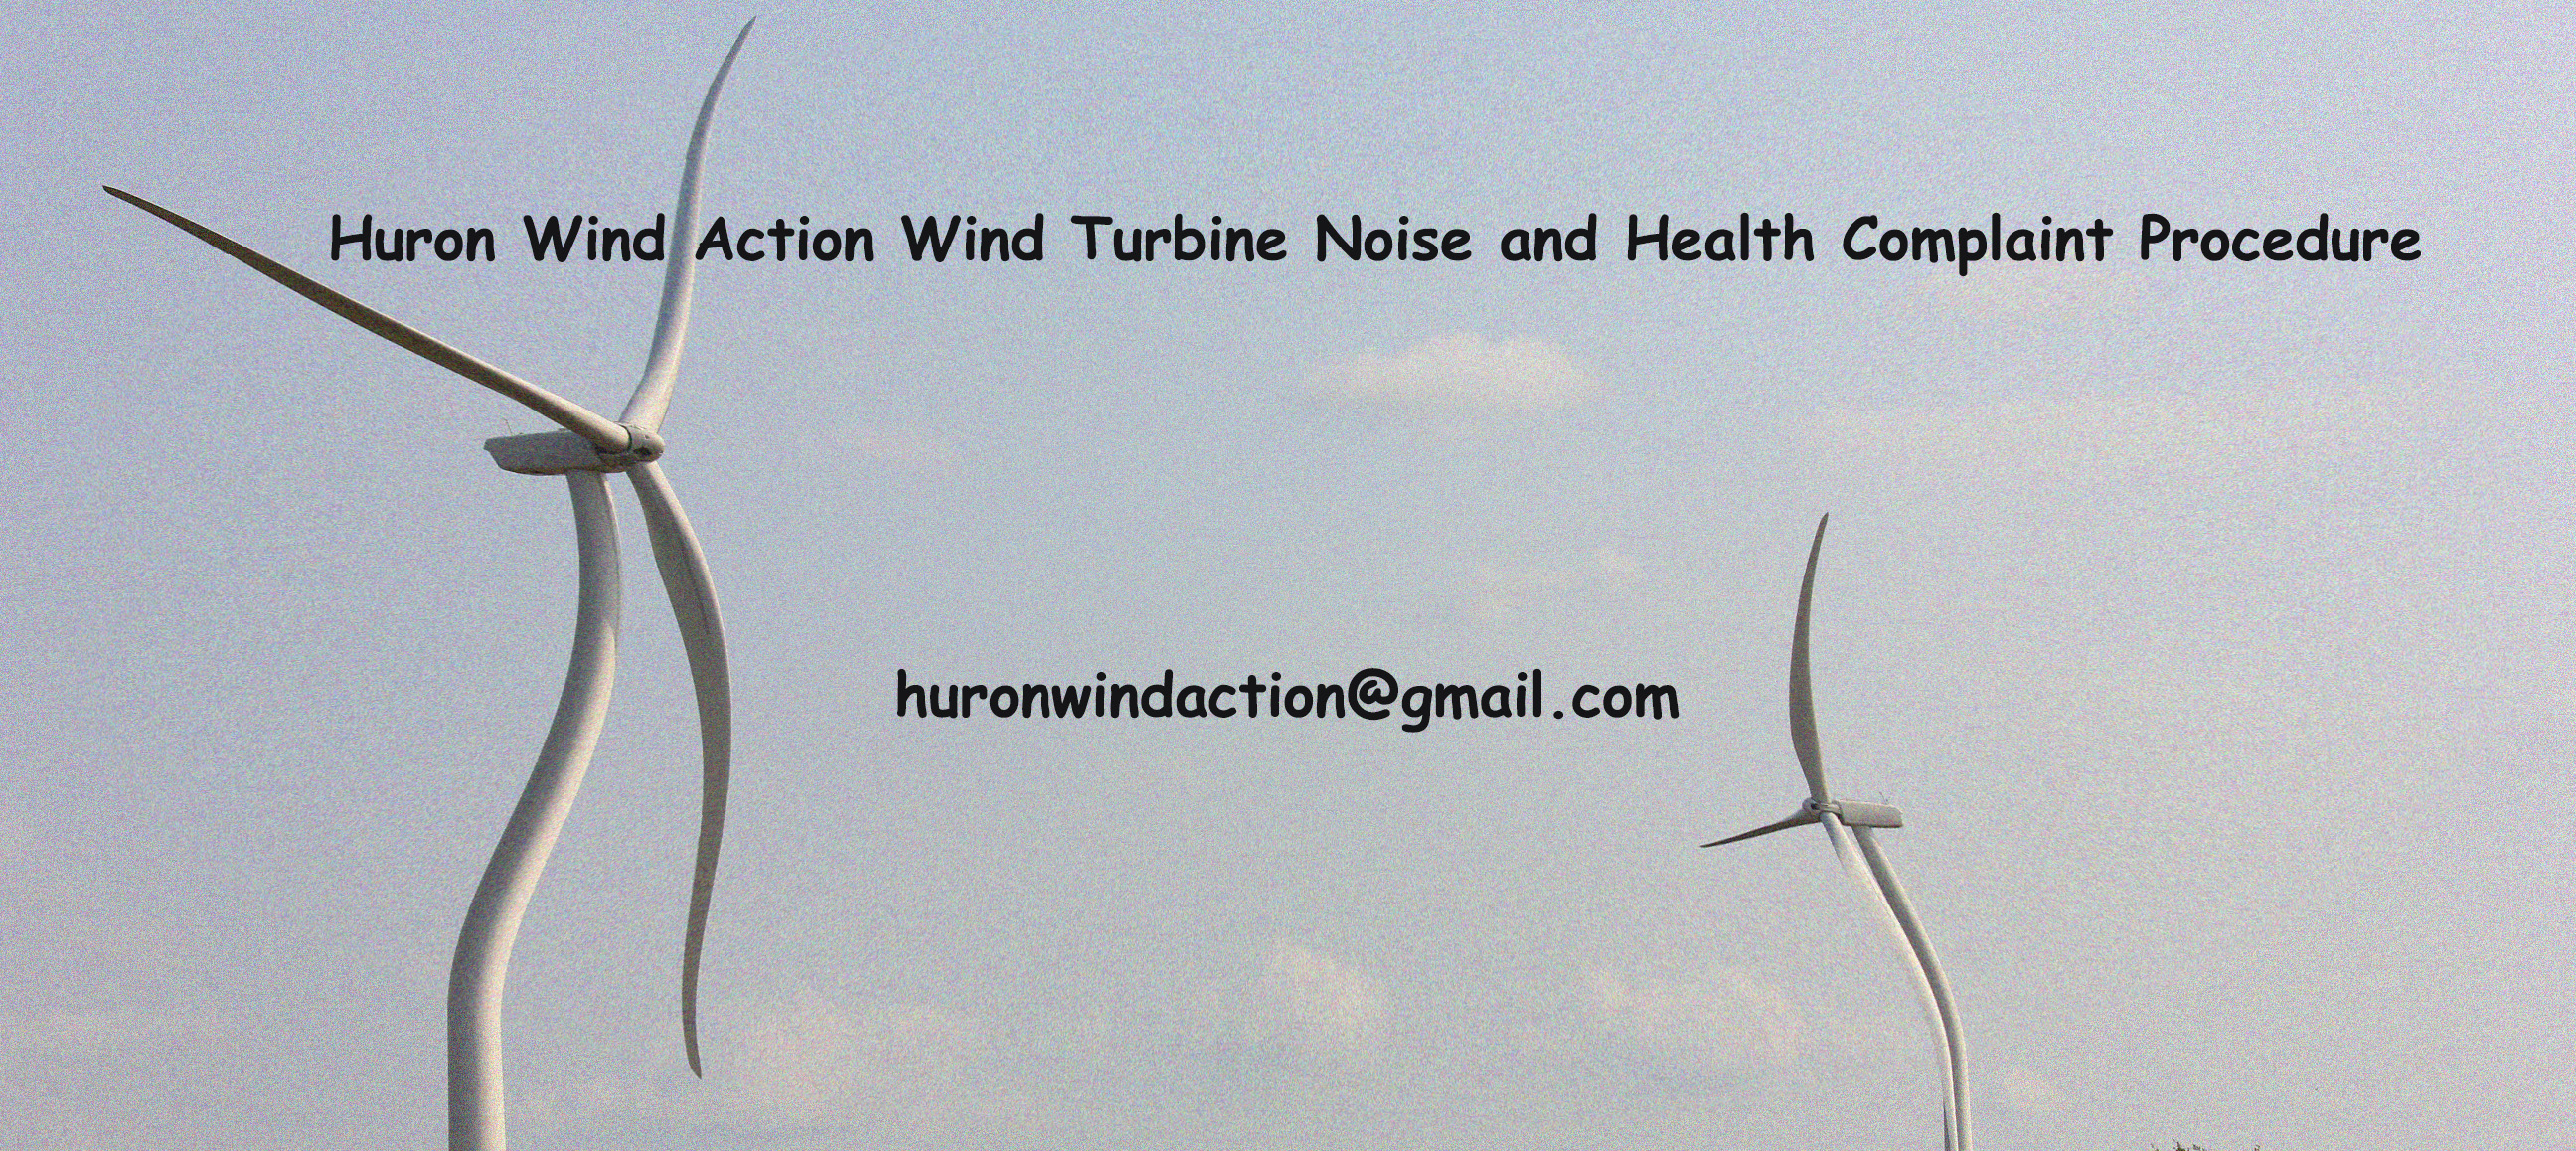 huronwindaction